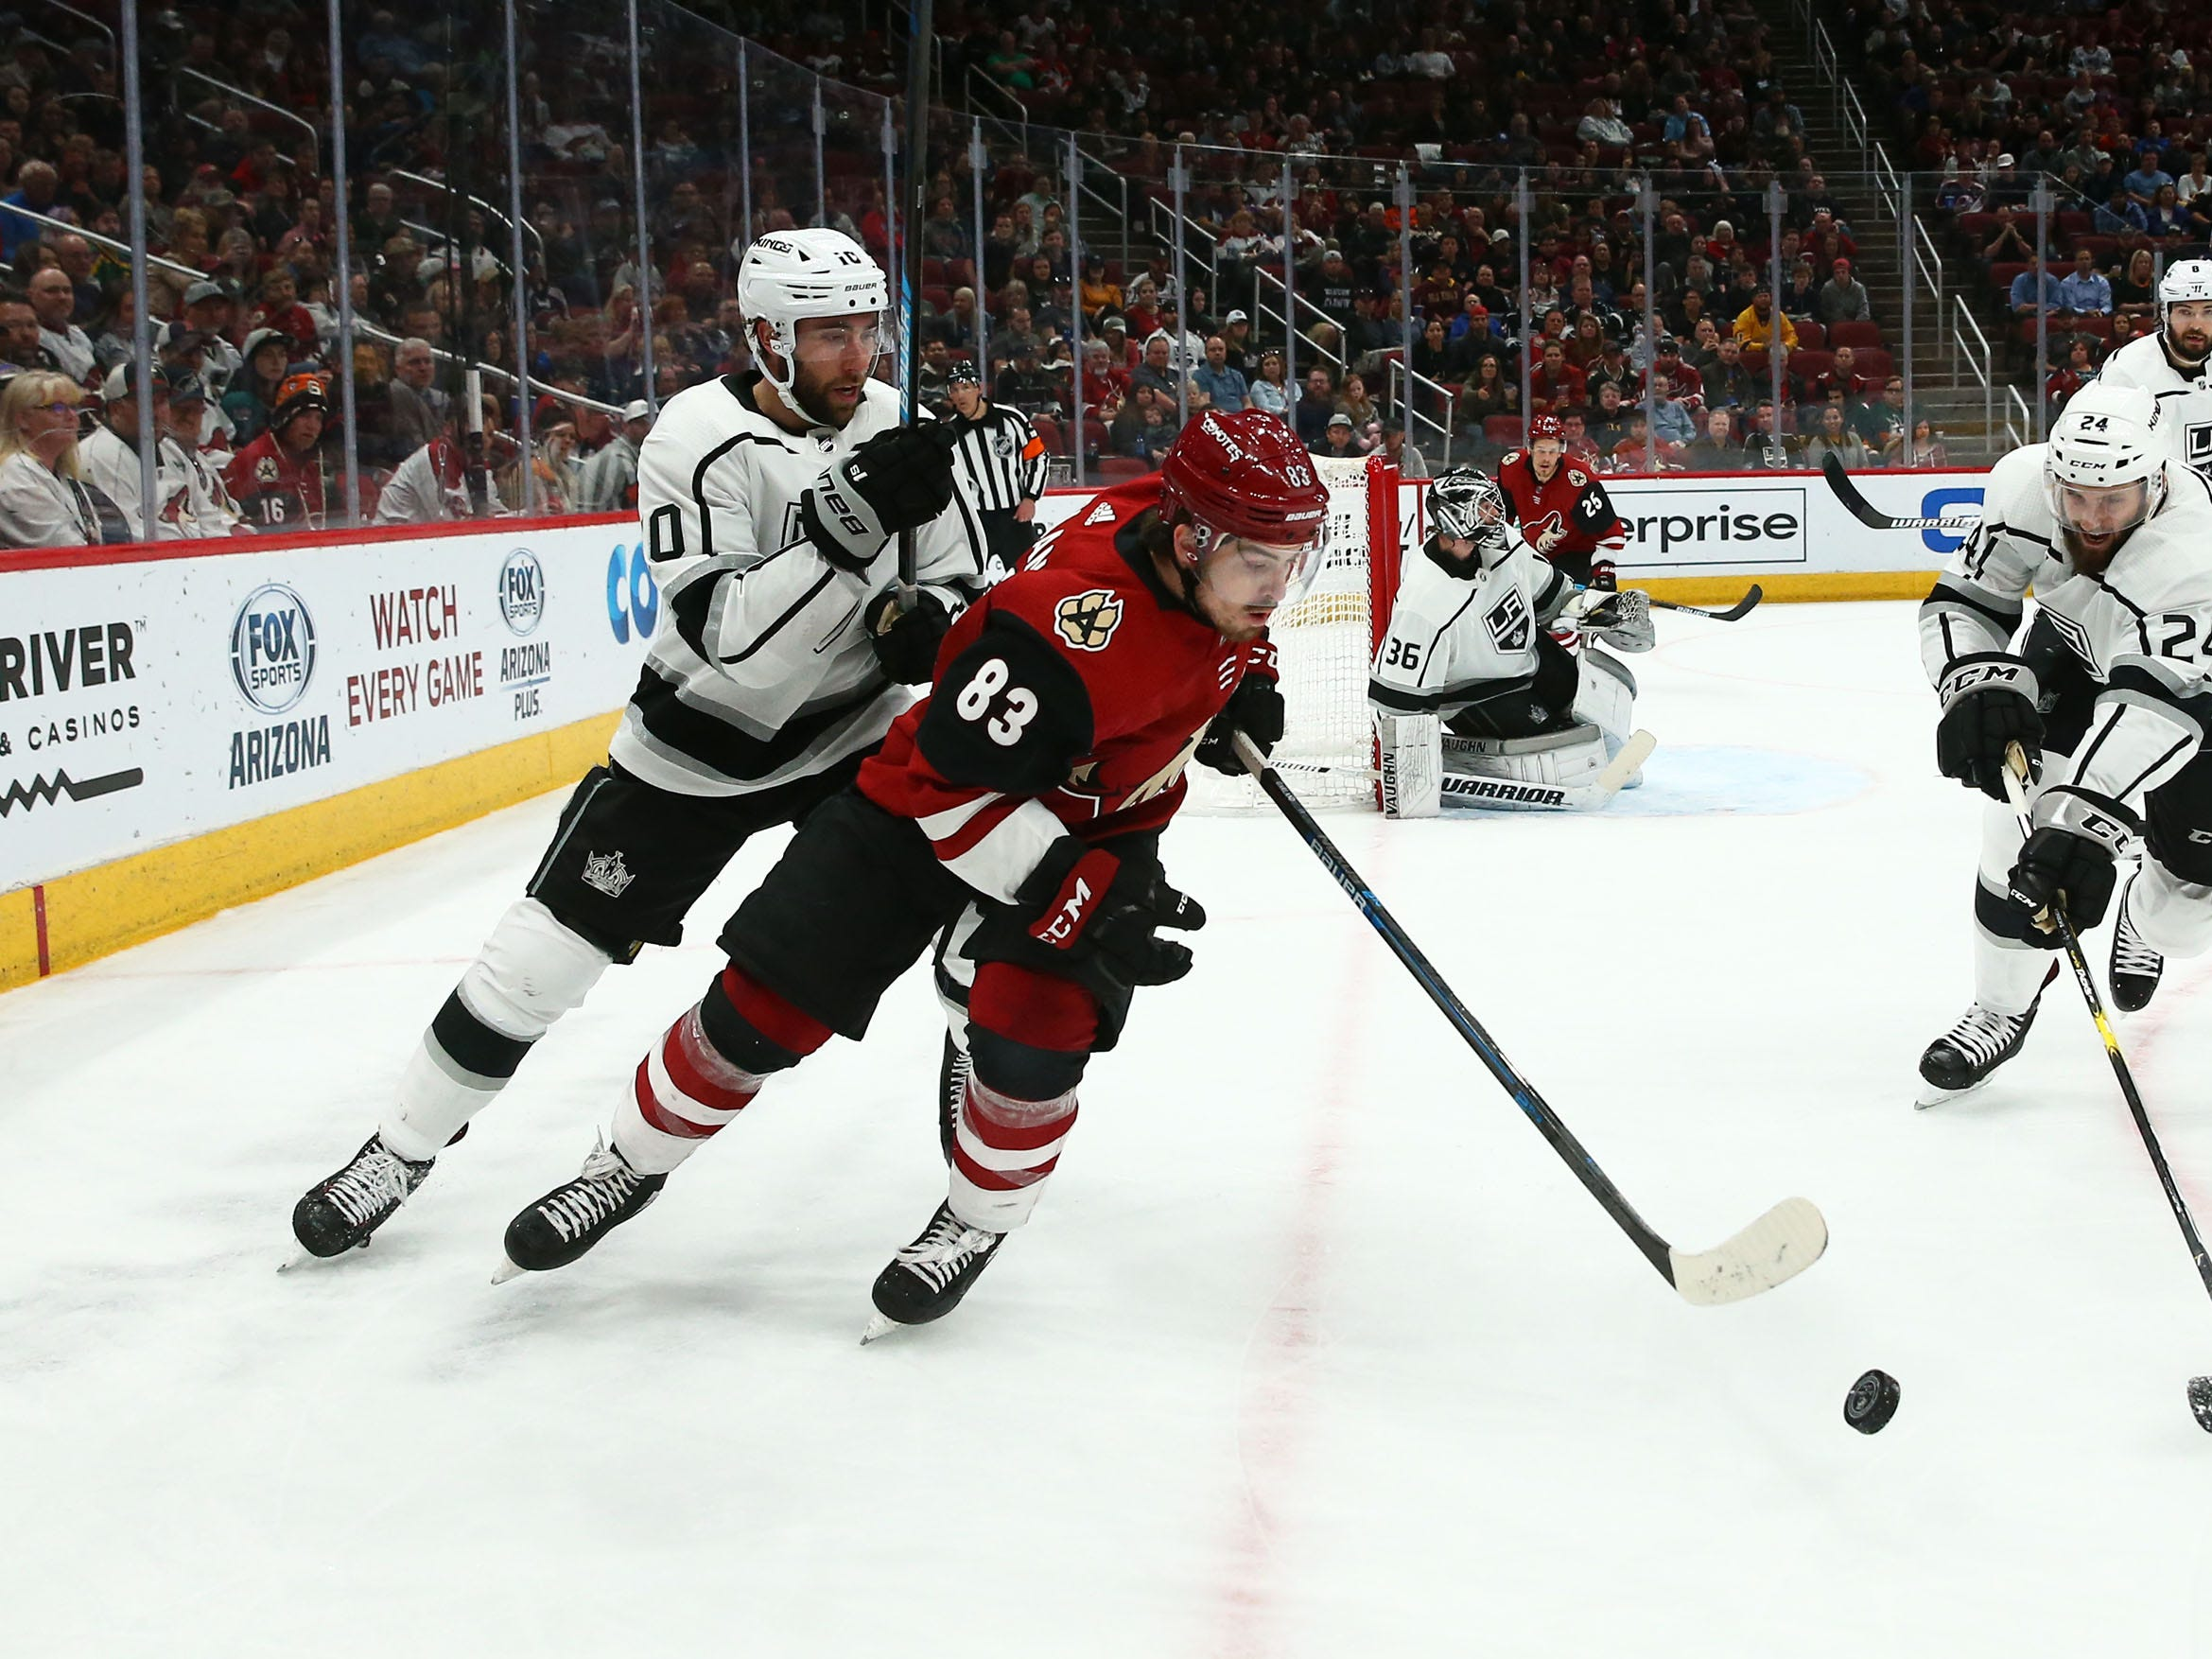 Arizona Coyotes right wing Conor Garland (83) battles for the puck with Los Angeles Kings defenseman Derek Forbort (24) in the second period on Apr. 2, 2019 at Gila River Arena in Glendale, Ariz.